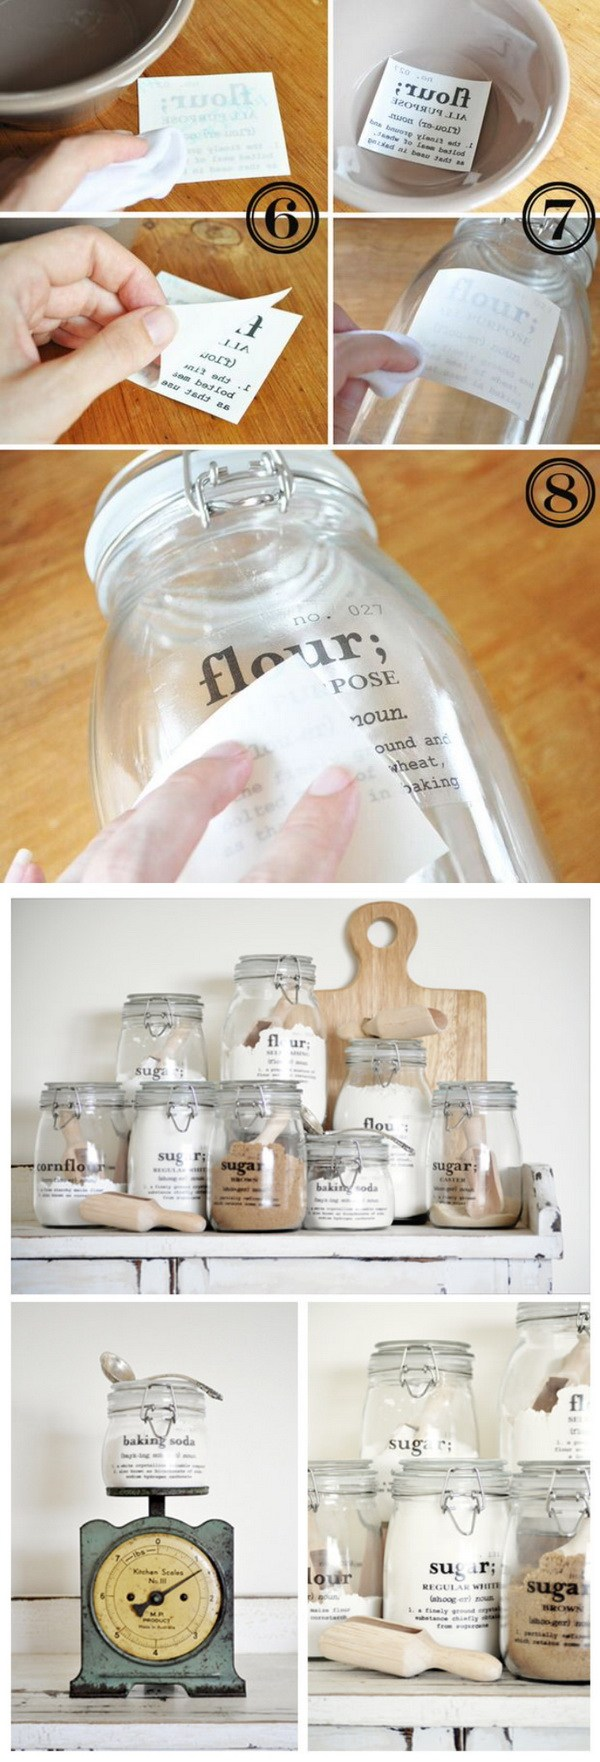 DIY Kitchen Containers With Labels.